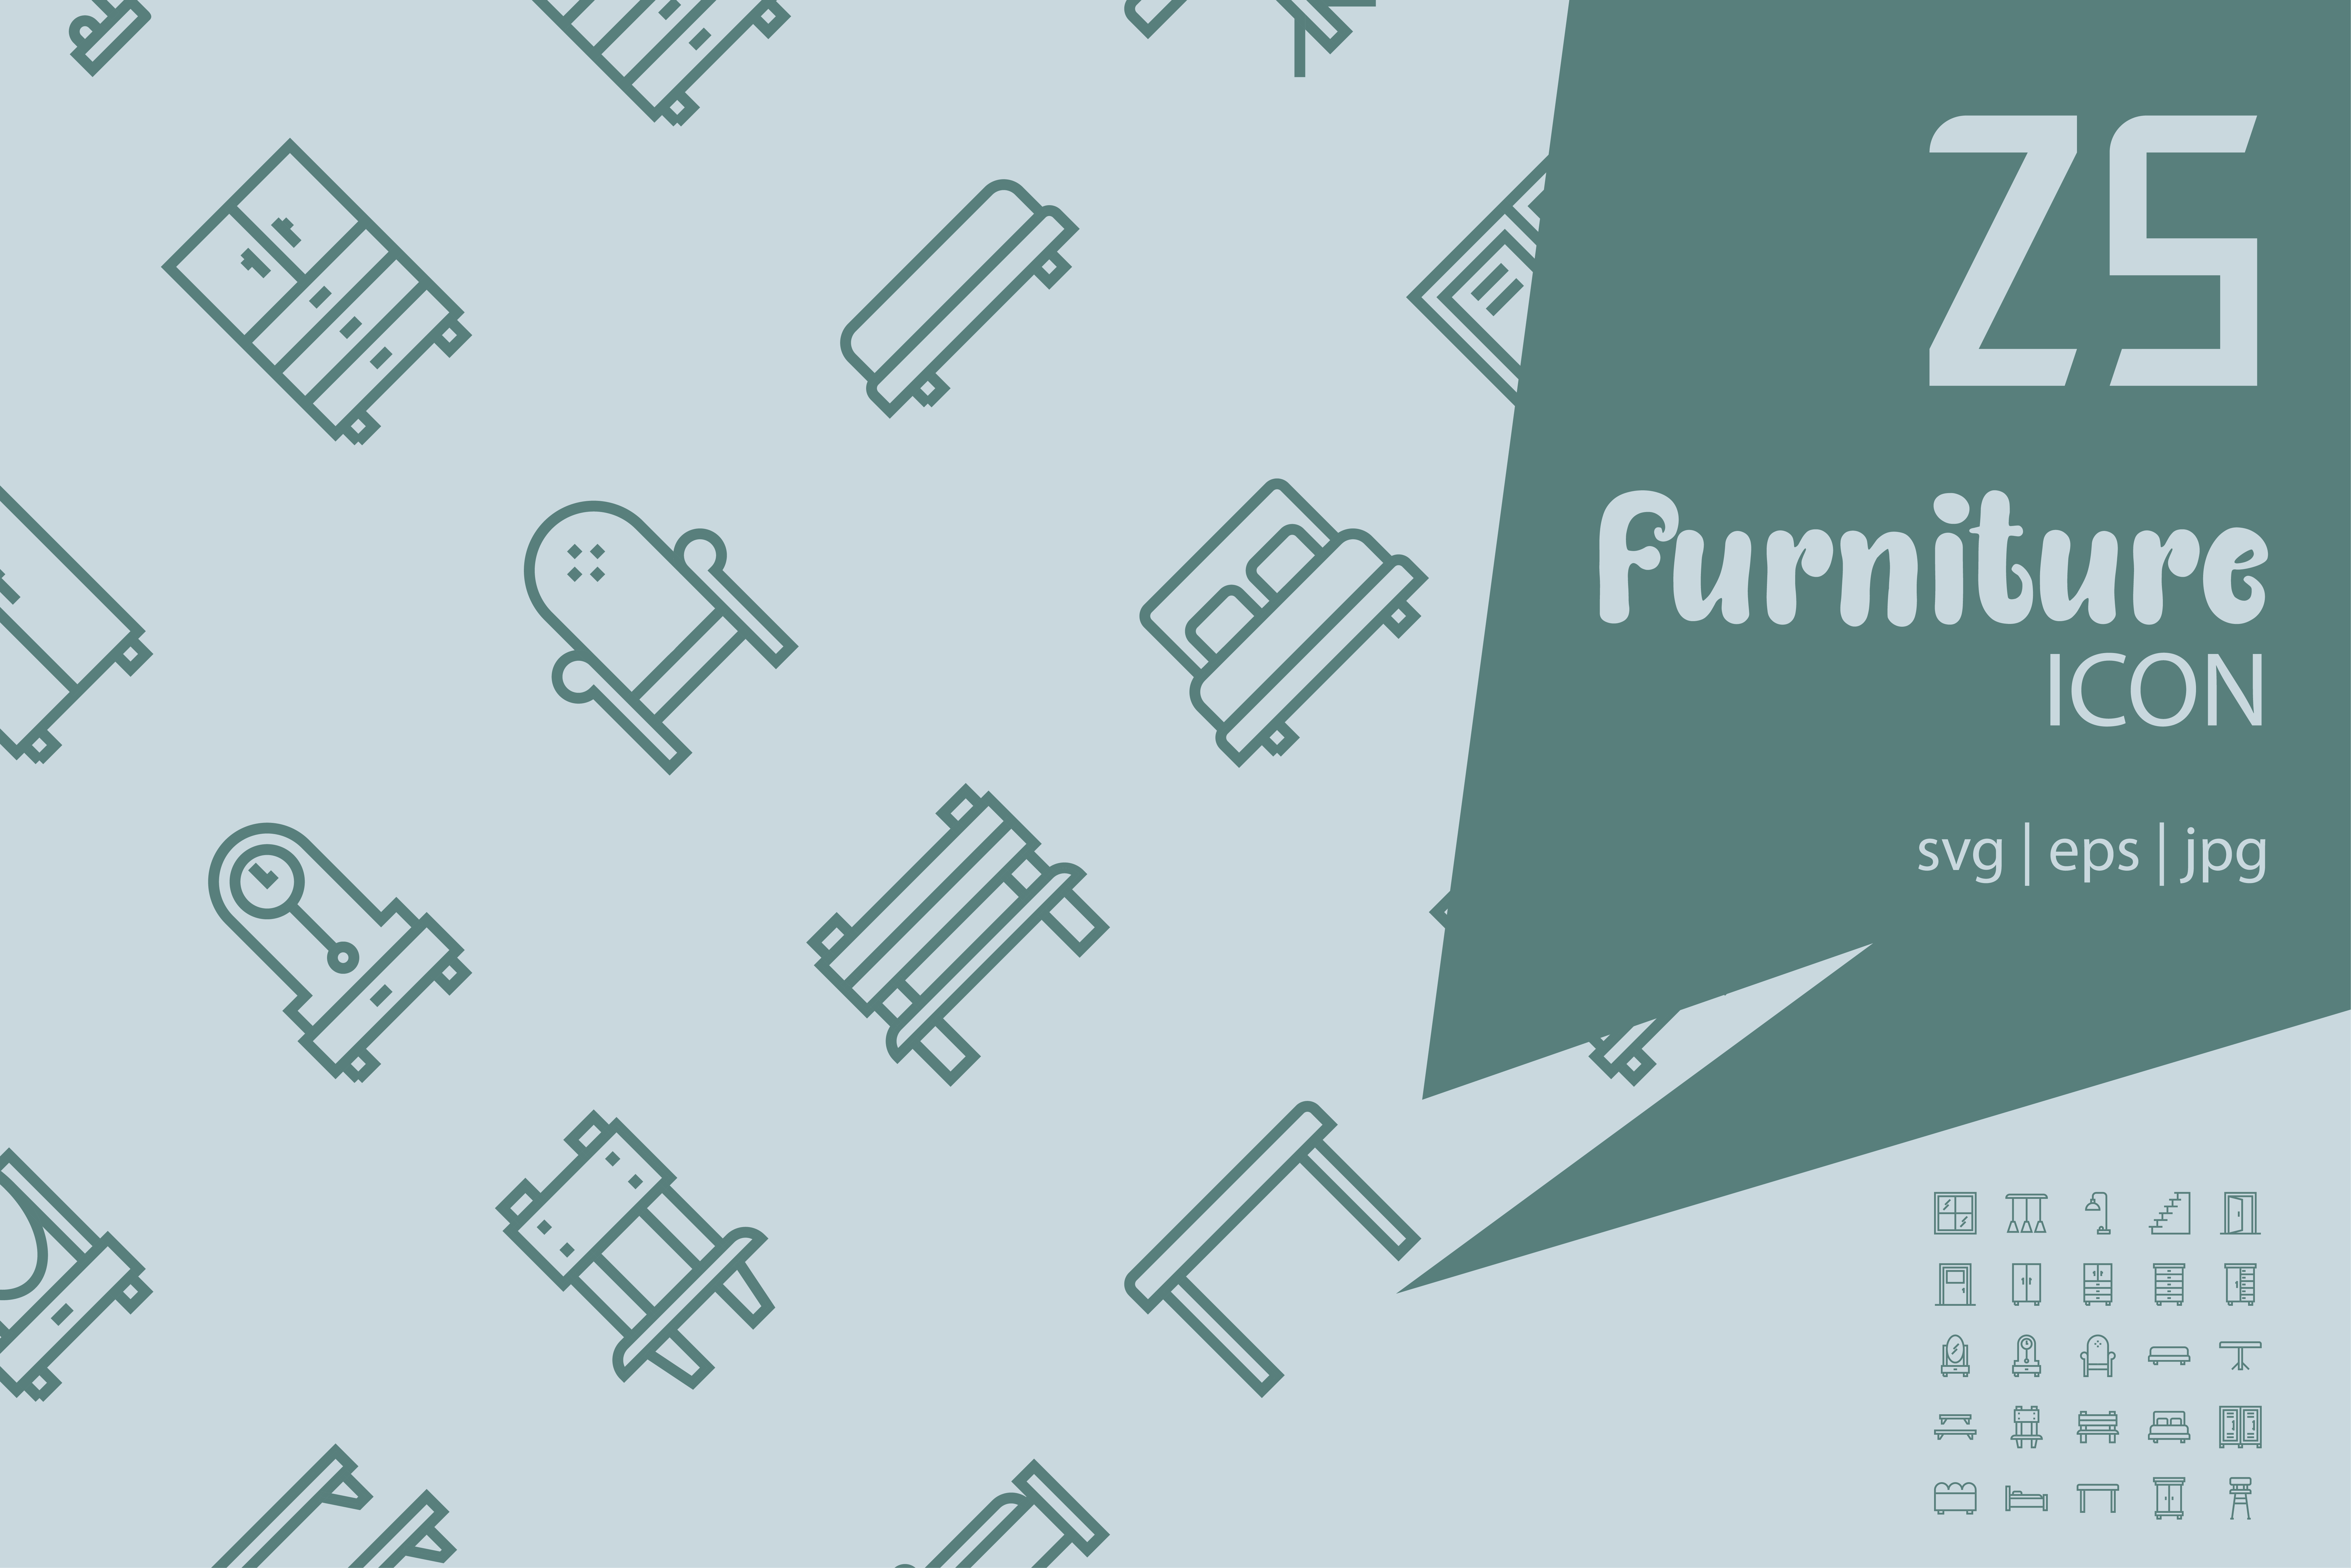 Download Free Furniture Graphic By Astuti Julia93 Gmail Com Creative Fabrica for Cricut Explore, Silhouette and other cutting machines.